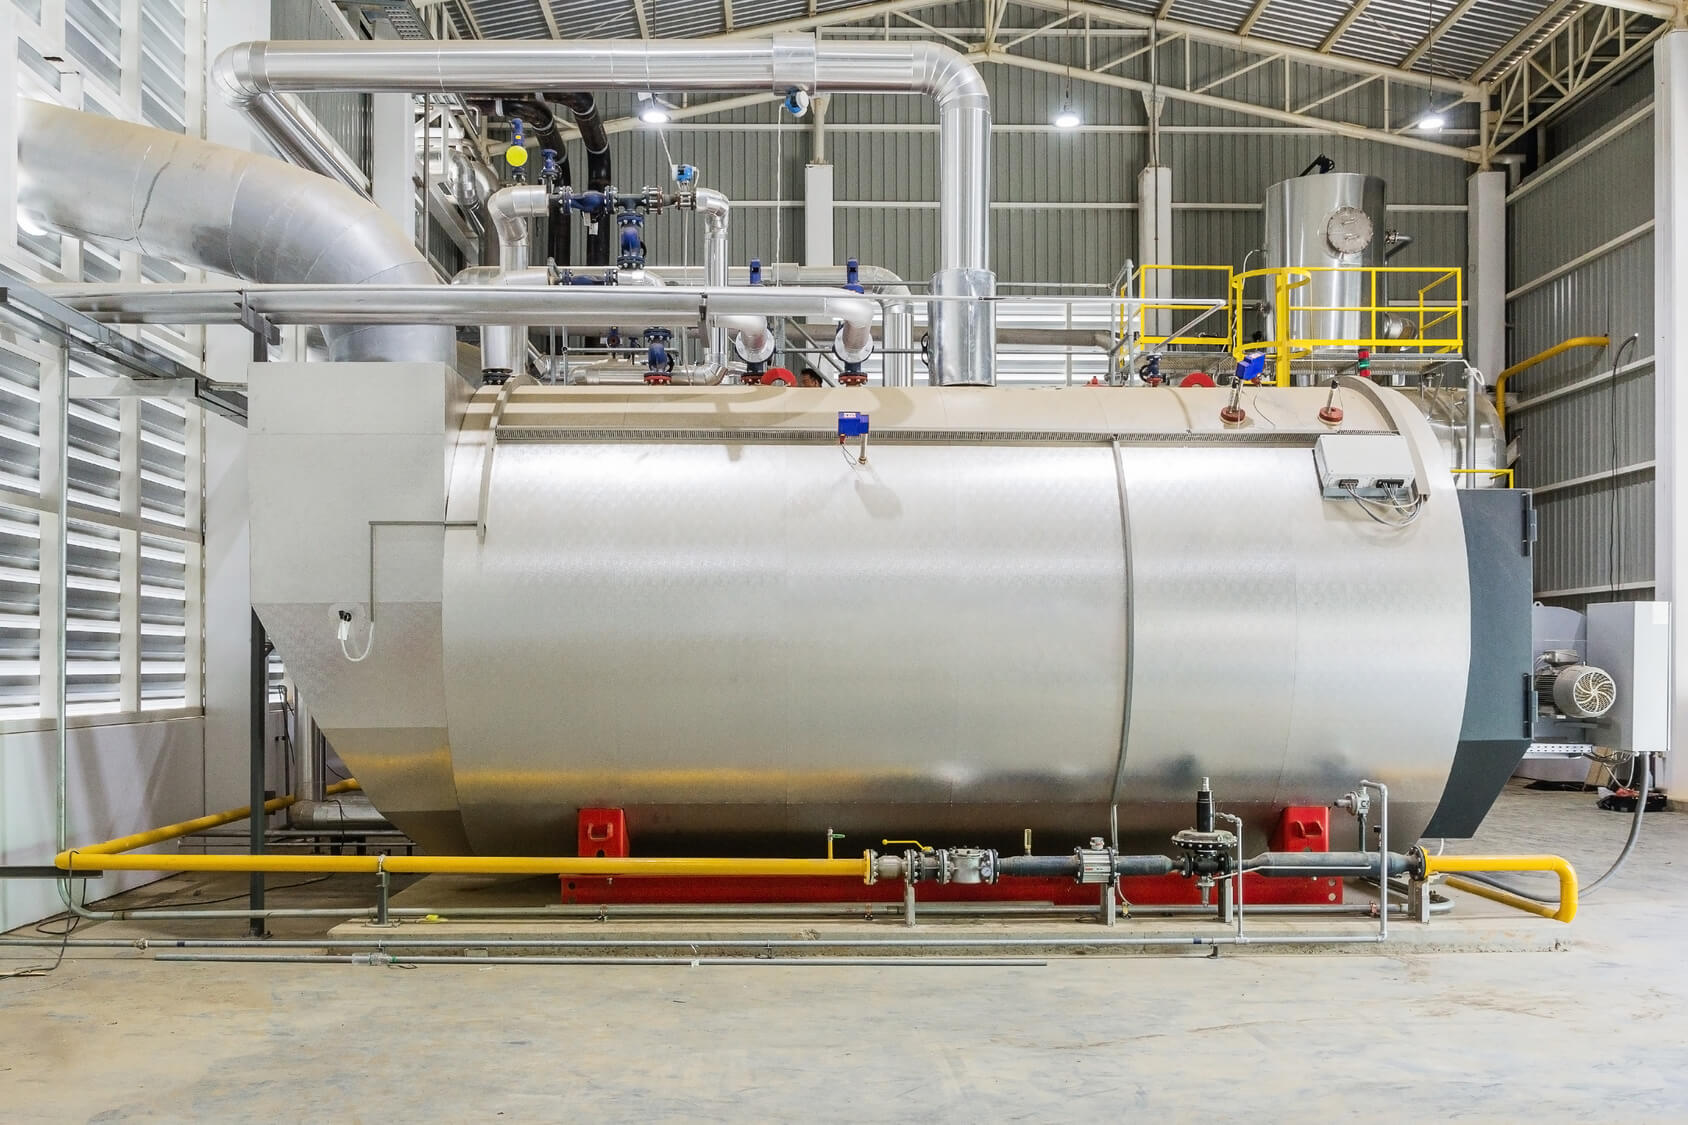 Hot water boiler package system for industrial gas heating | Forain